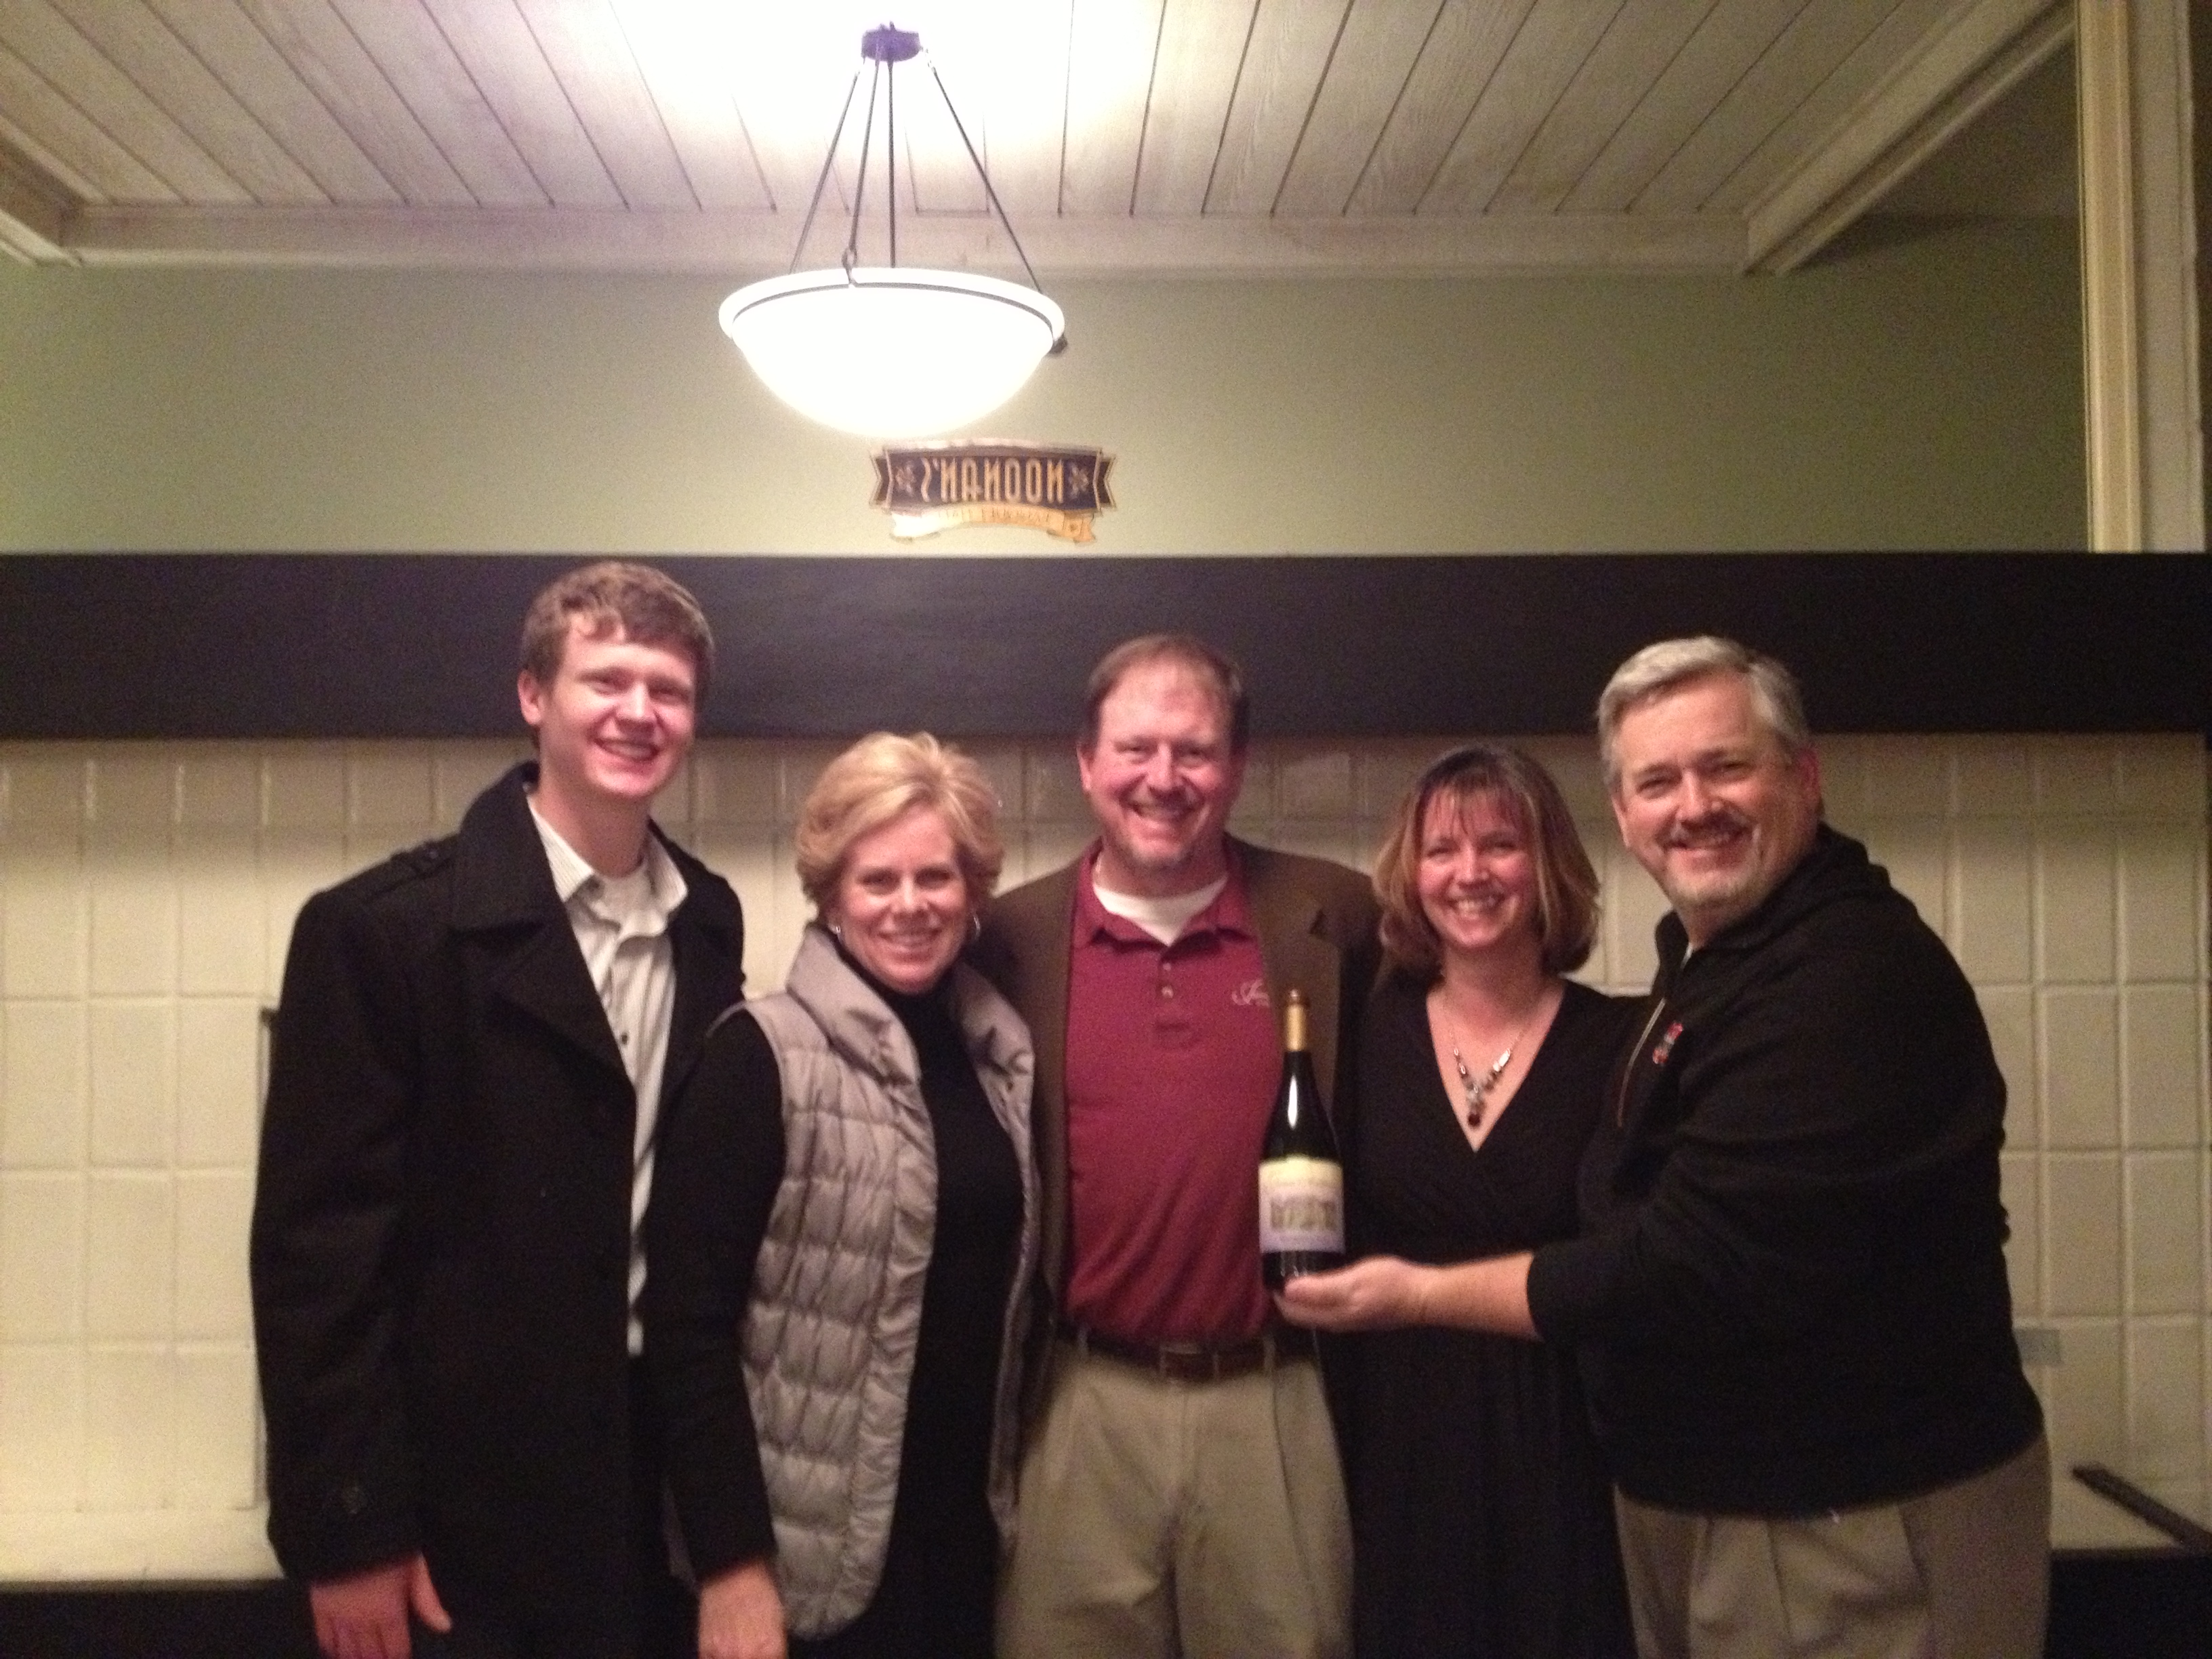 CFN Board Members Wendy Frenzel and Brian O'Hearn with James and Beau Ballard of James Arthur Vineyards and Cheryl O'Hearn